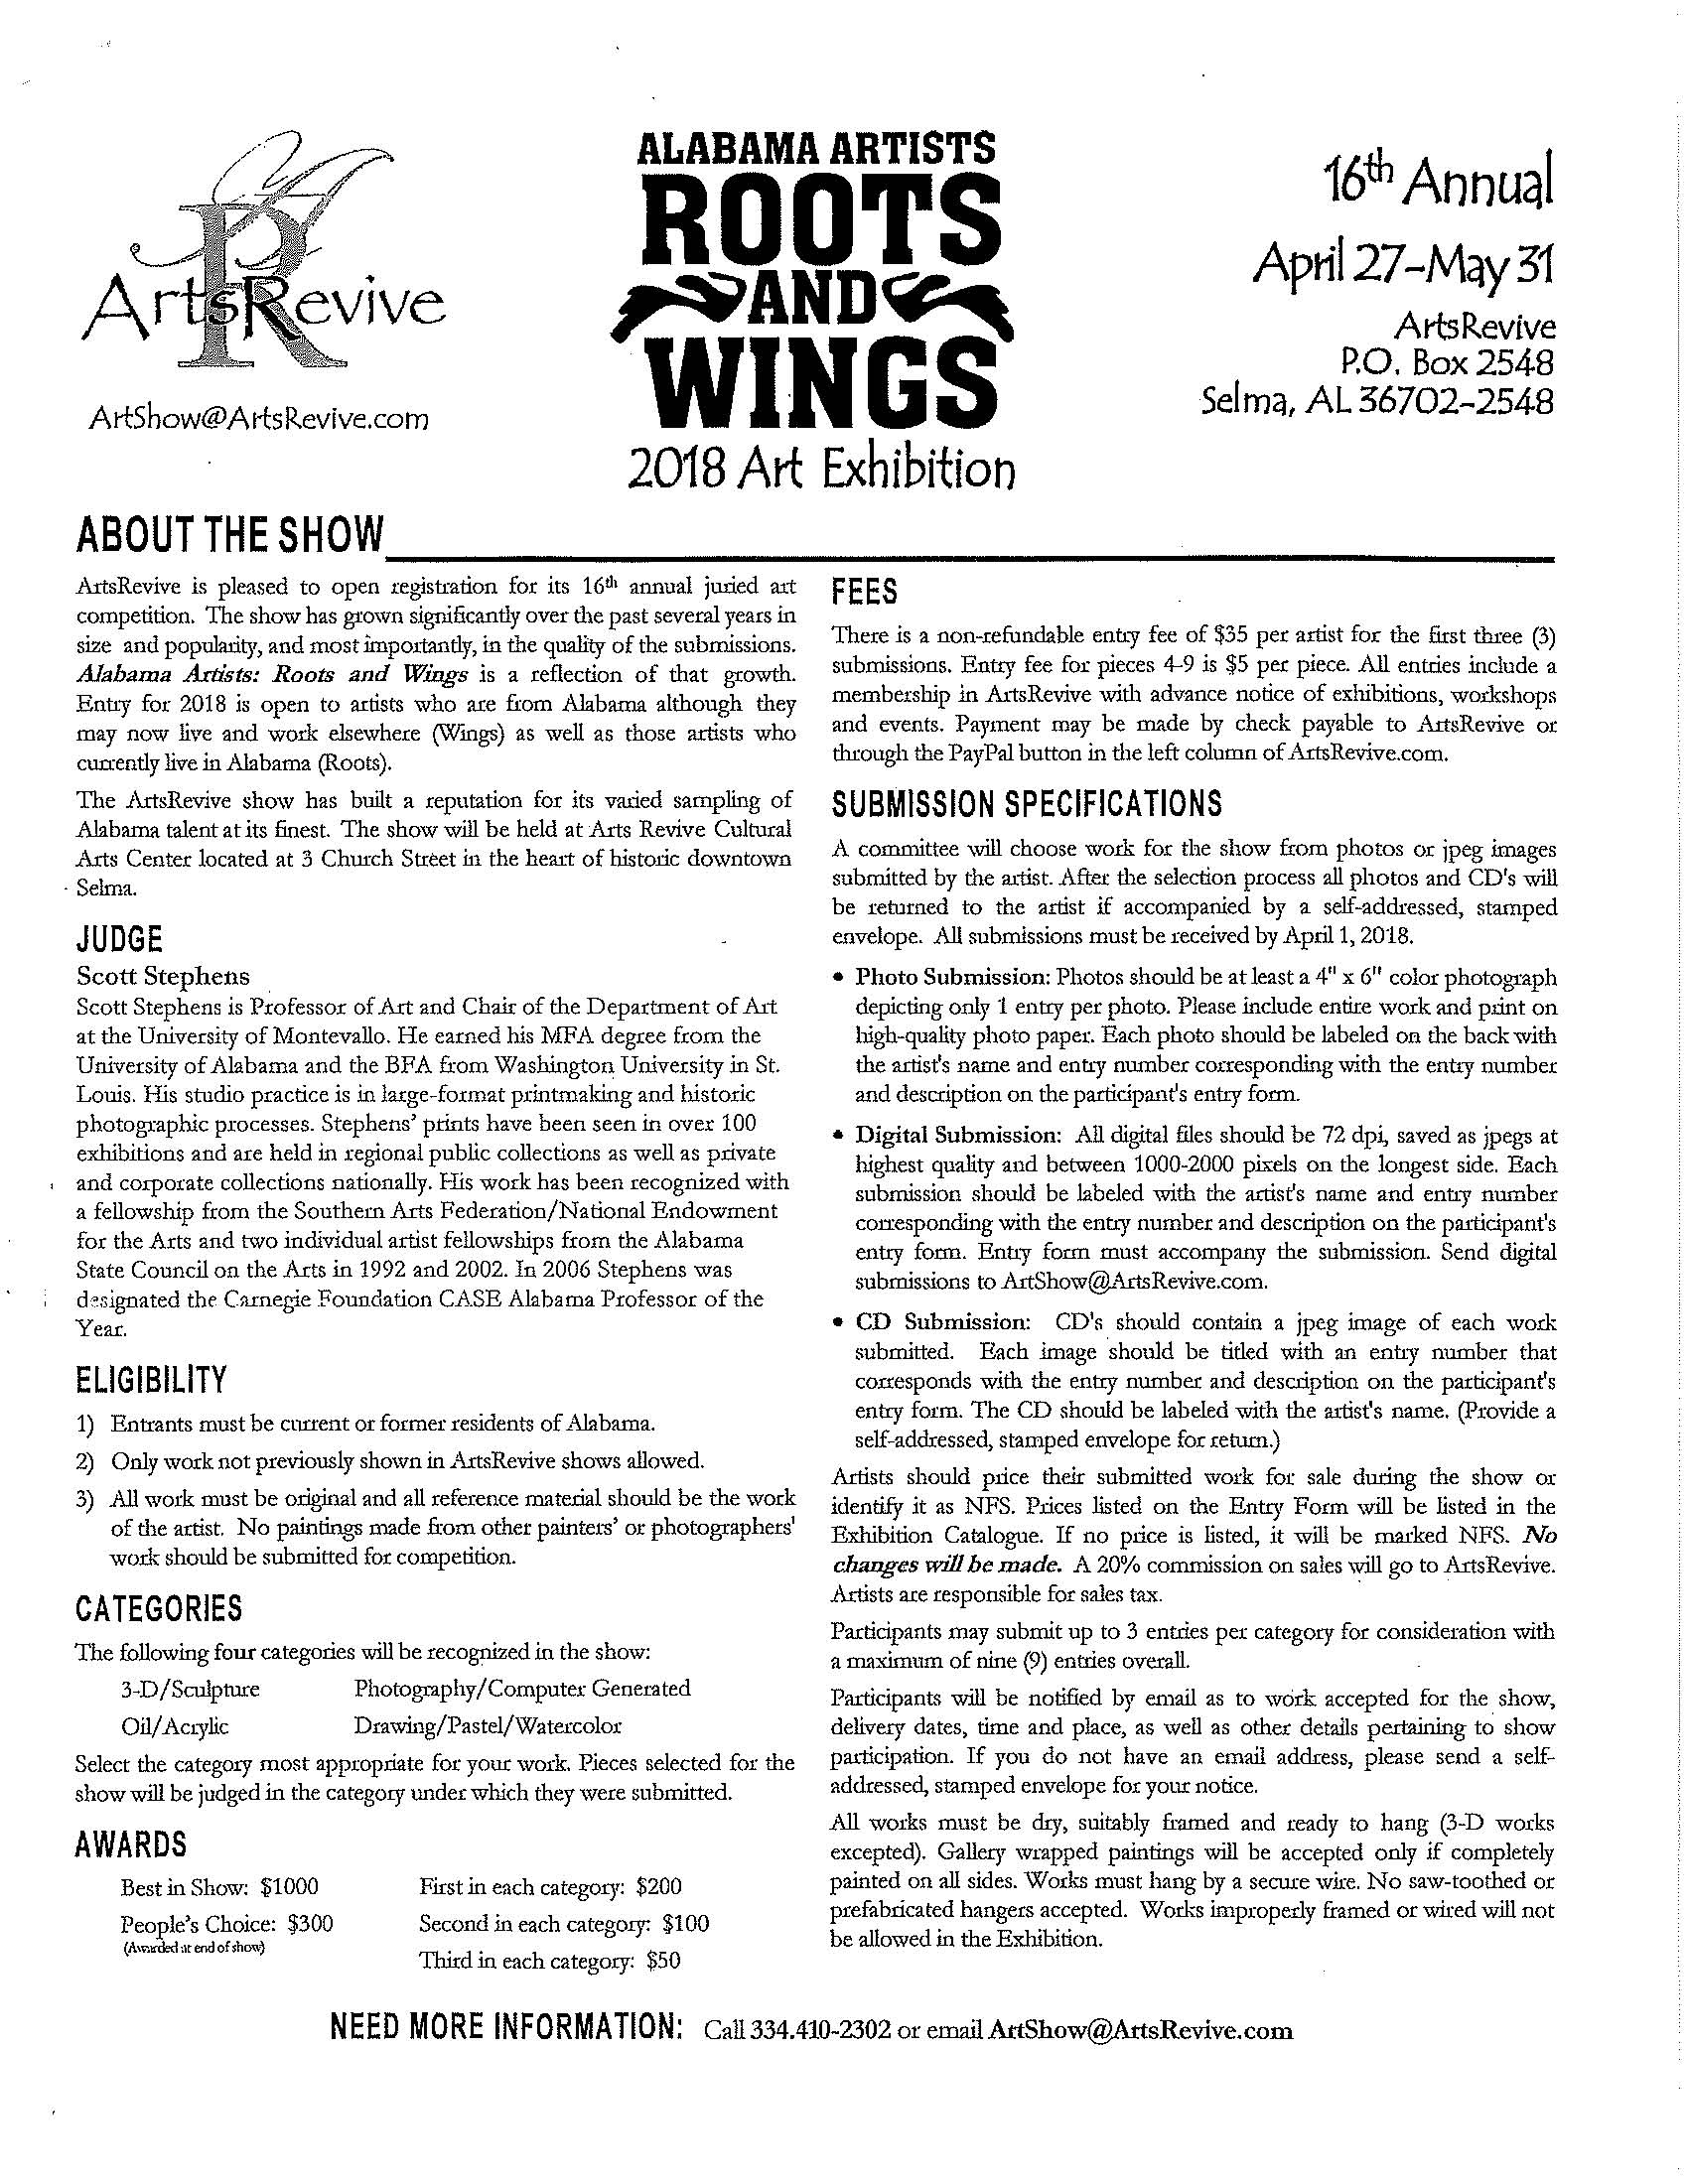 Roots and Wings Art Exhibition Page 2